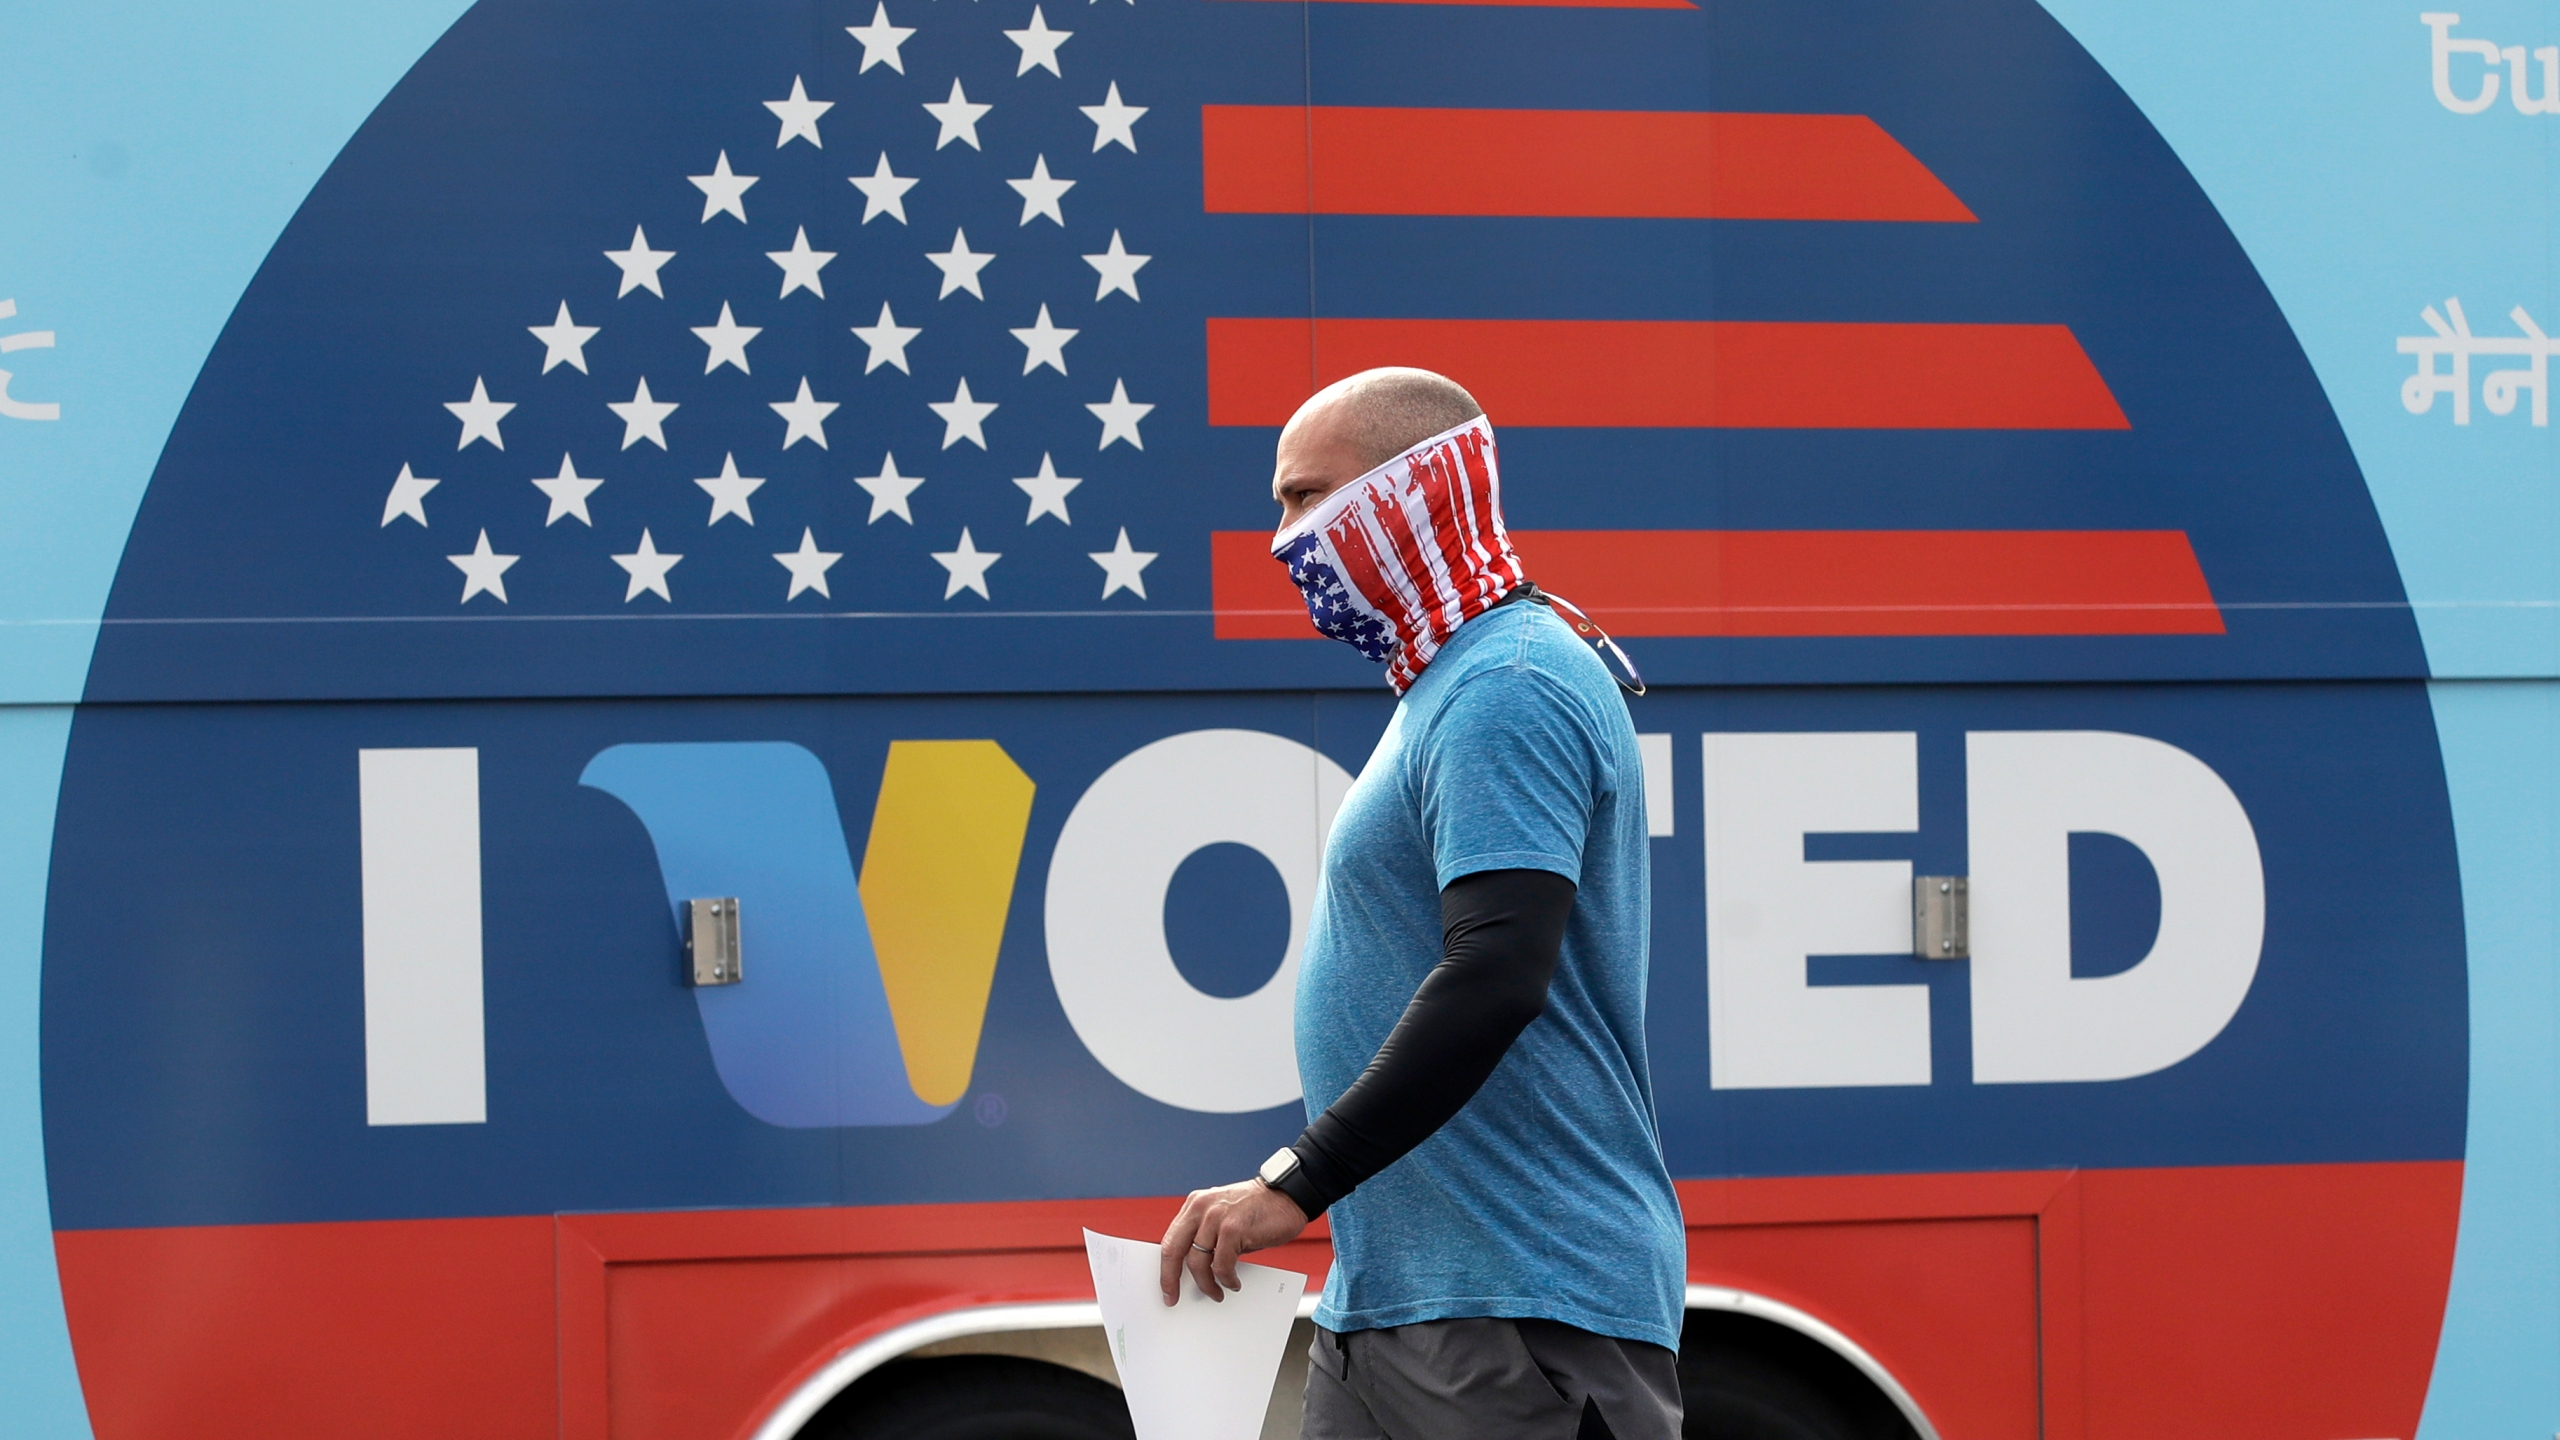 In this May 12, 2020 file photo, Robb Rehfeld wears a mask as he walks to cast his vote during a special election for California's 25th Congressional District seat in Santa Clarita, Calif. With a divided nation on edge as Election Day approaches, California is warning local election officials to prepare for disruption at polling places and potential cases of voters being intimidated or blocked from casting ballots. (AP Photo/Marcio Jose Sanchez, File)